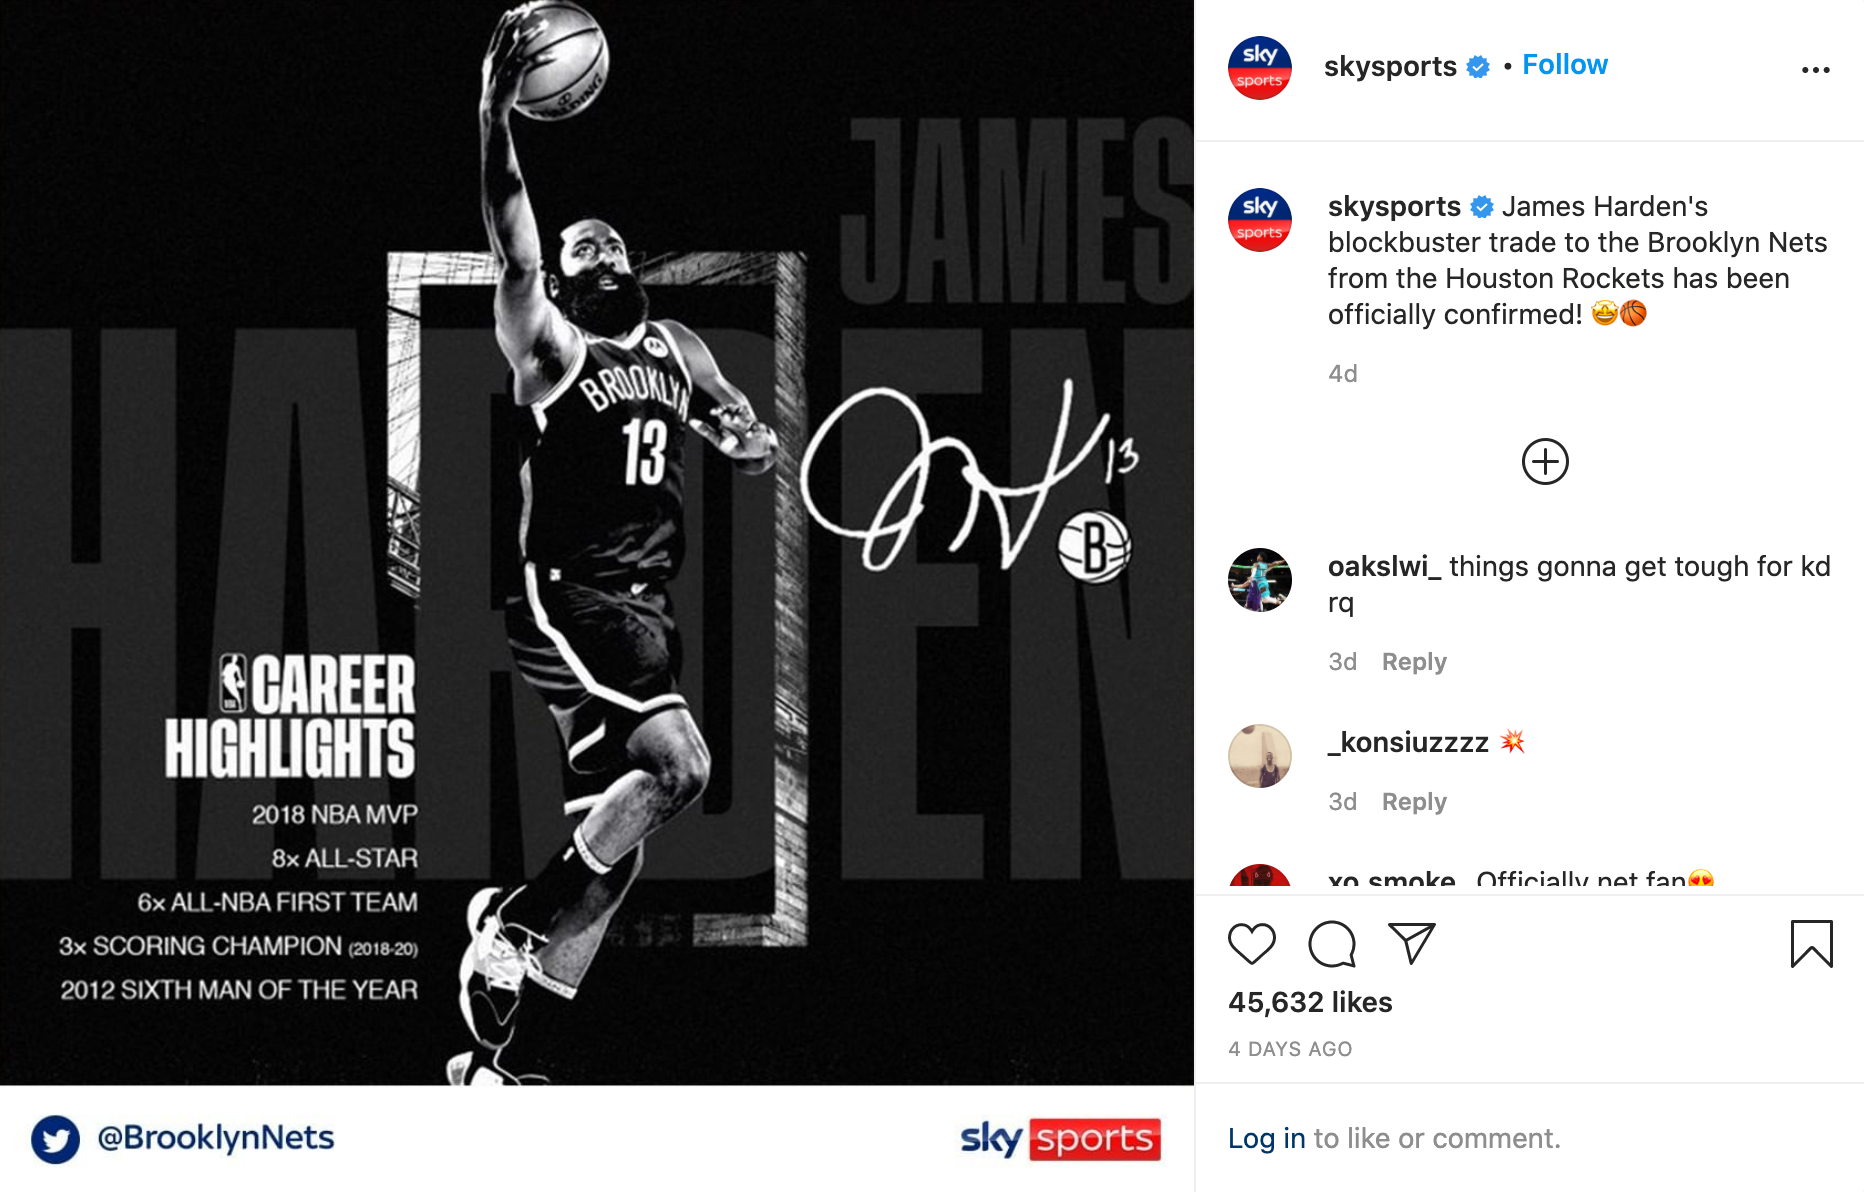 brooklyn-nets-insta-post-1